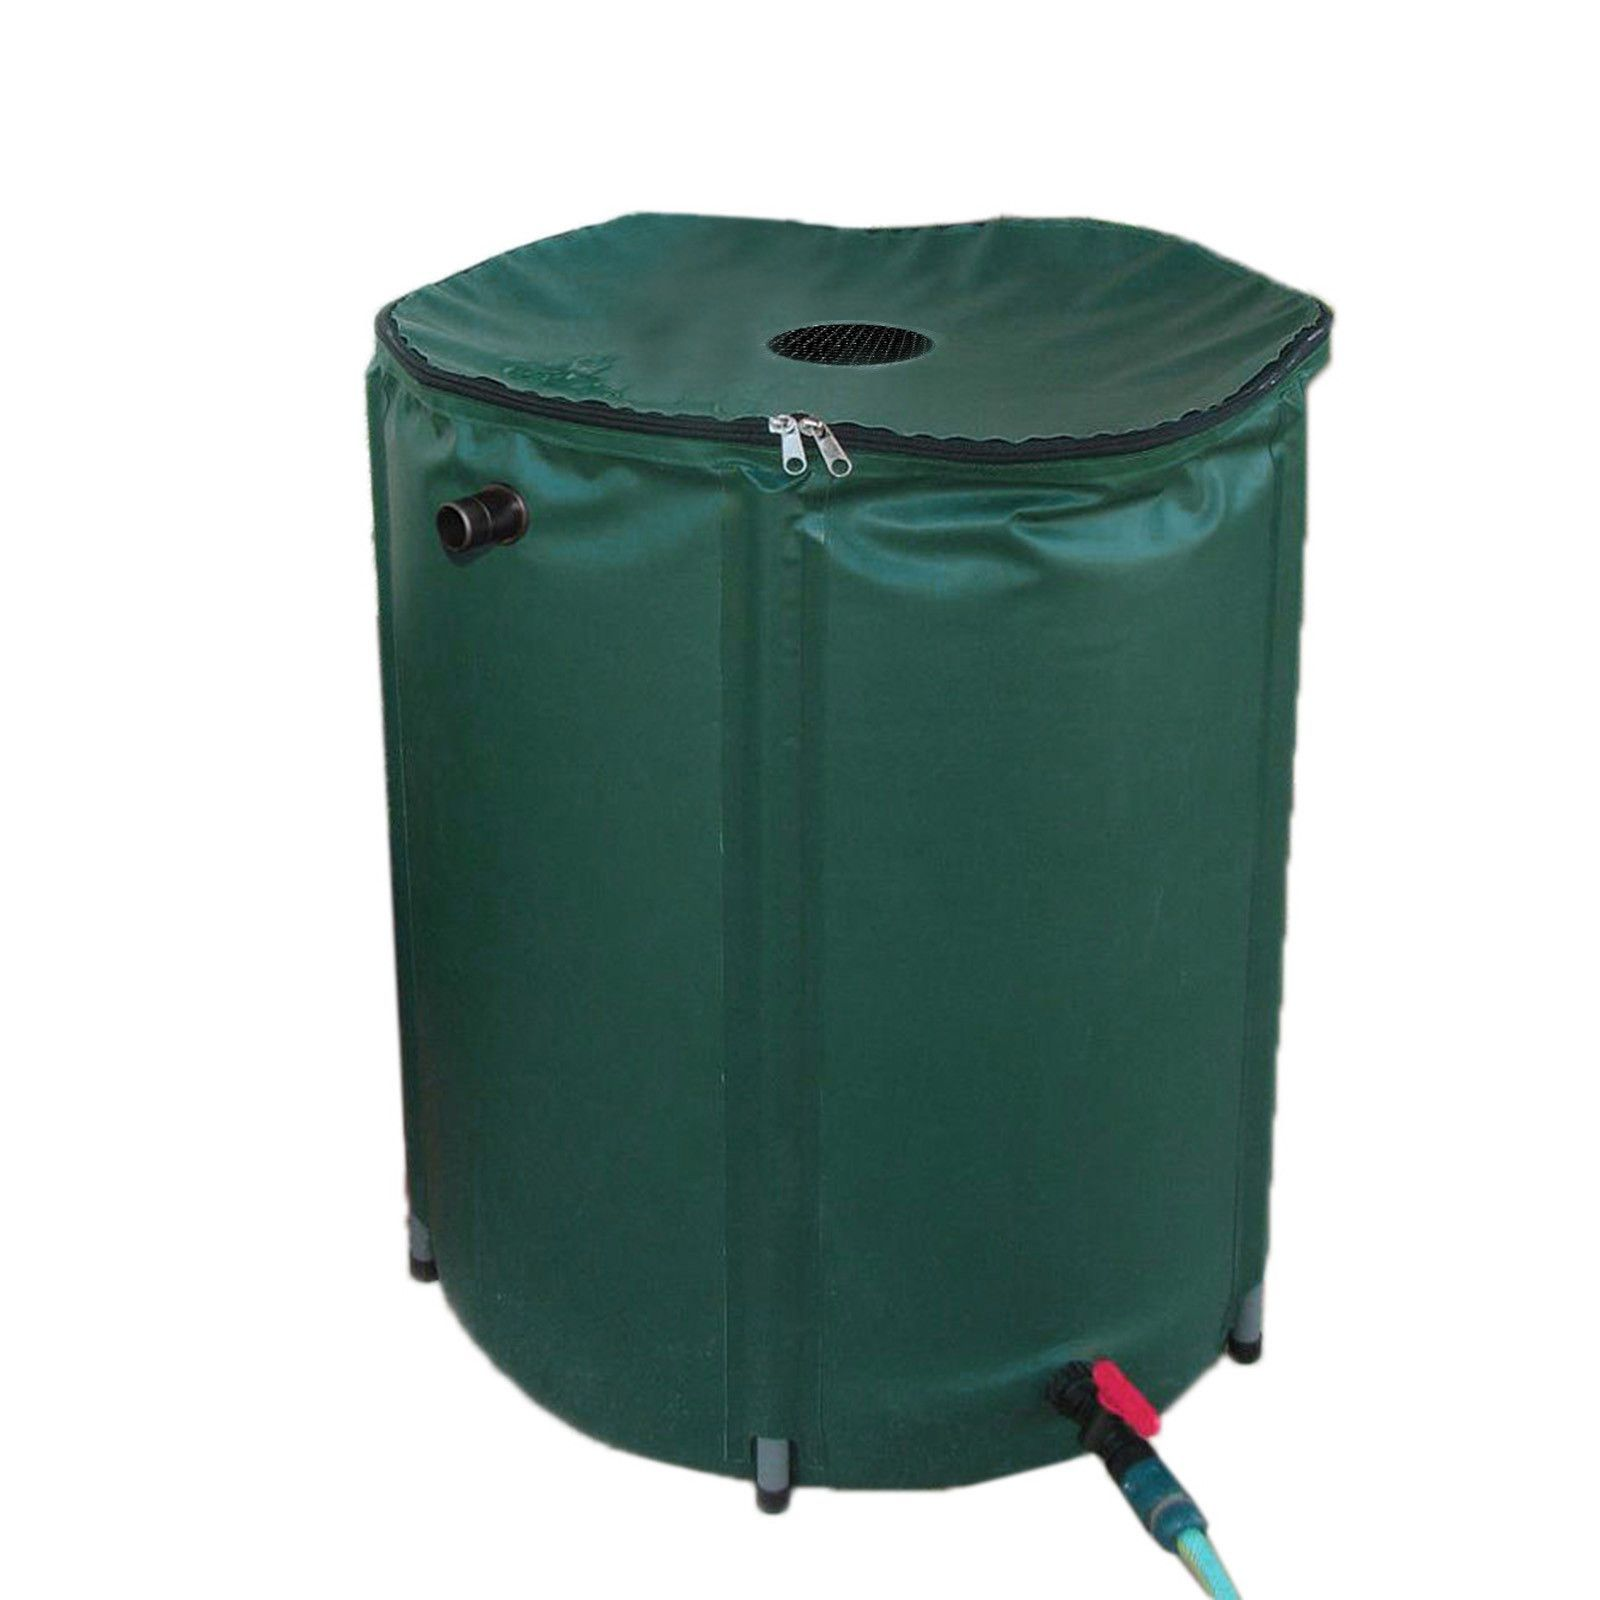 Height: 28inch; Diameter/ circumference: 24 inch Capacity: 50 Gallon; Material: PVC 600D Color: Green Package (Gross) size: 26 x 6 x 6 inch Weight net: 74 oz.; Weight gross: 76 oz. In this day and age